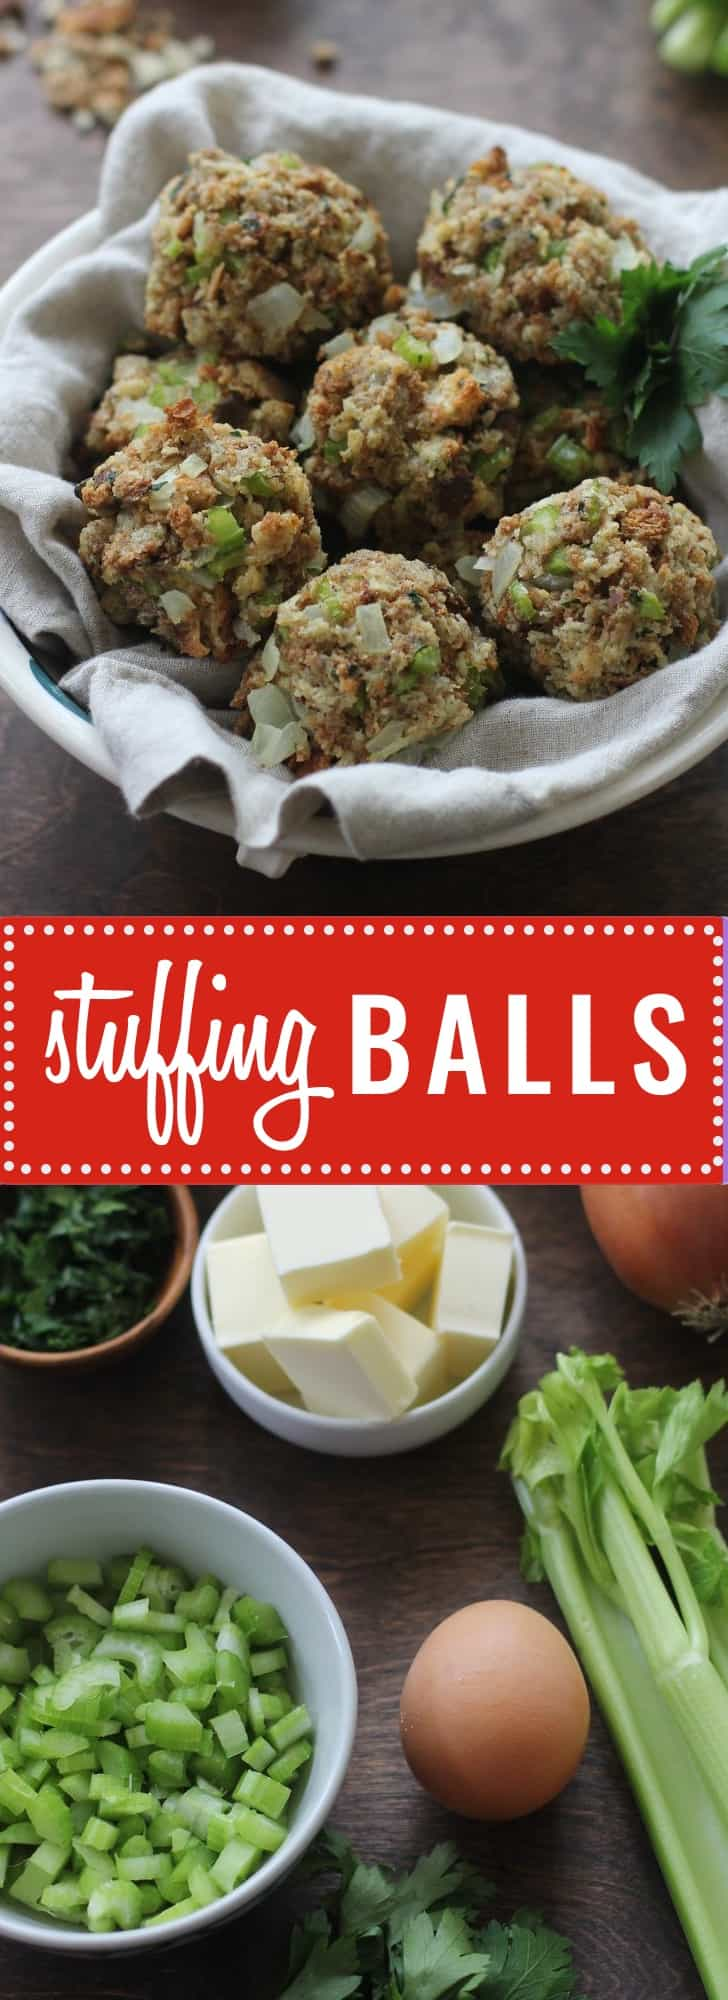 Stuffing Balls- A delicious holiday favorite reinvented. Rolled into balls and baked, a classic stuffing gets golden brown and crisp on the outside. Try it.